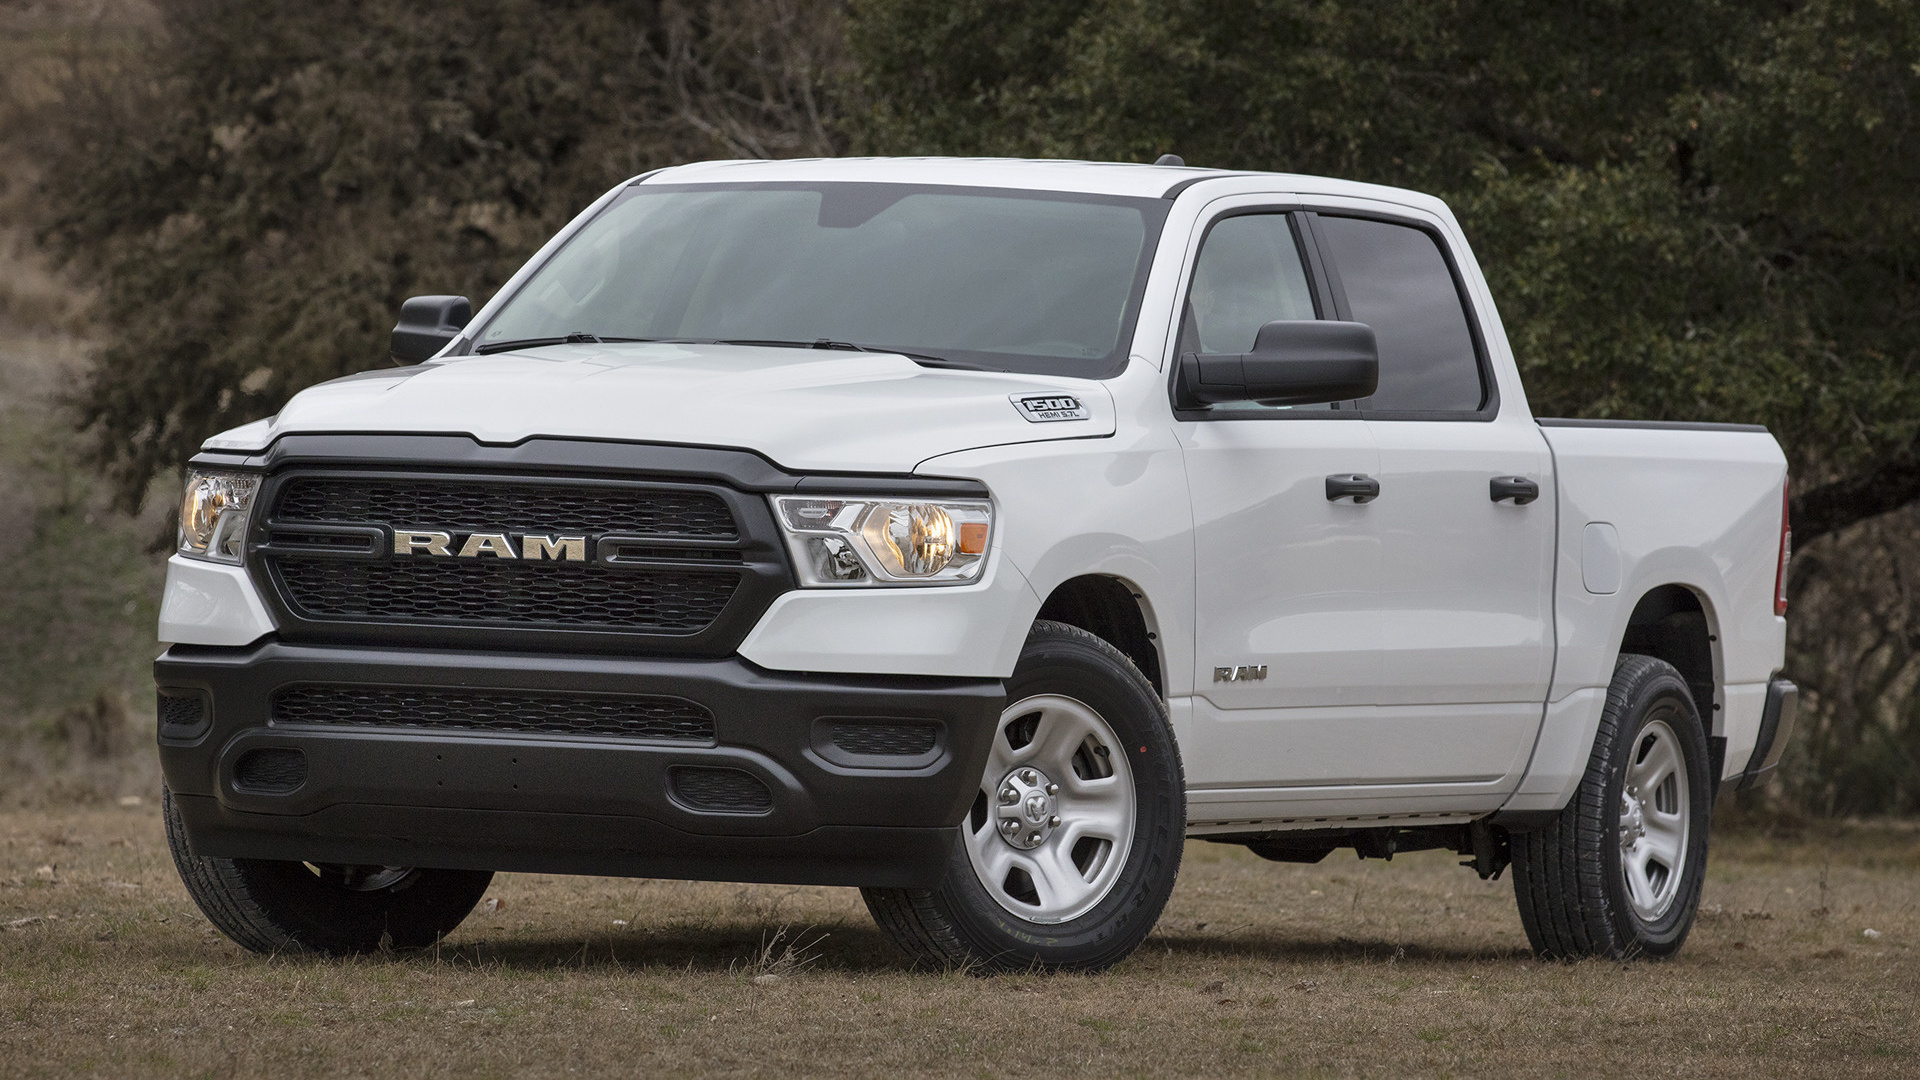 2019 Ram 1500 Tradesman Crew Cab [Short] - Wallpapers and HD Images | Car Pixel